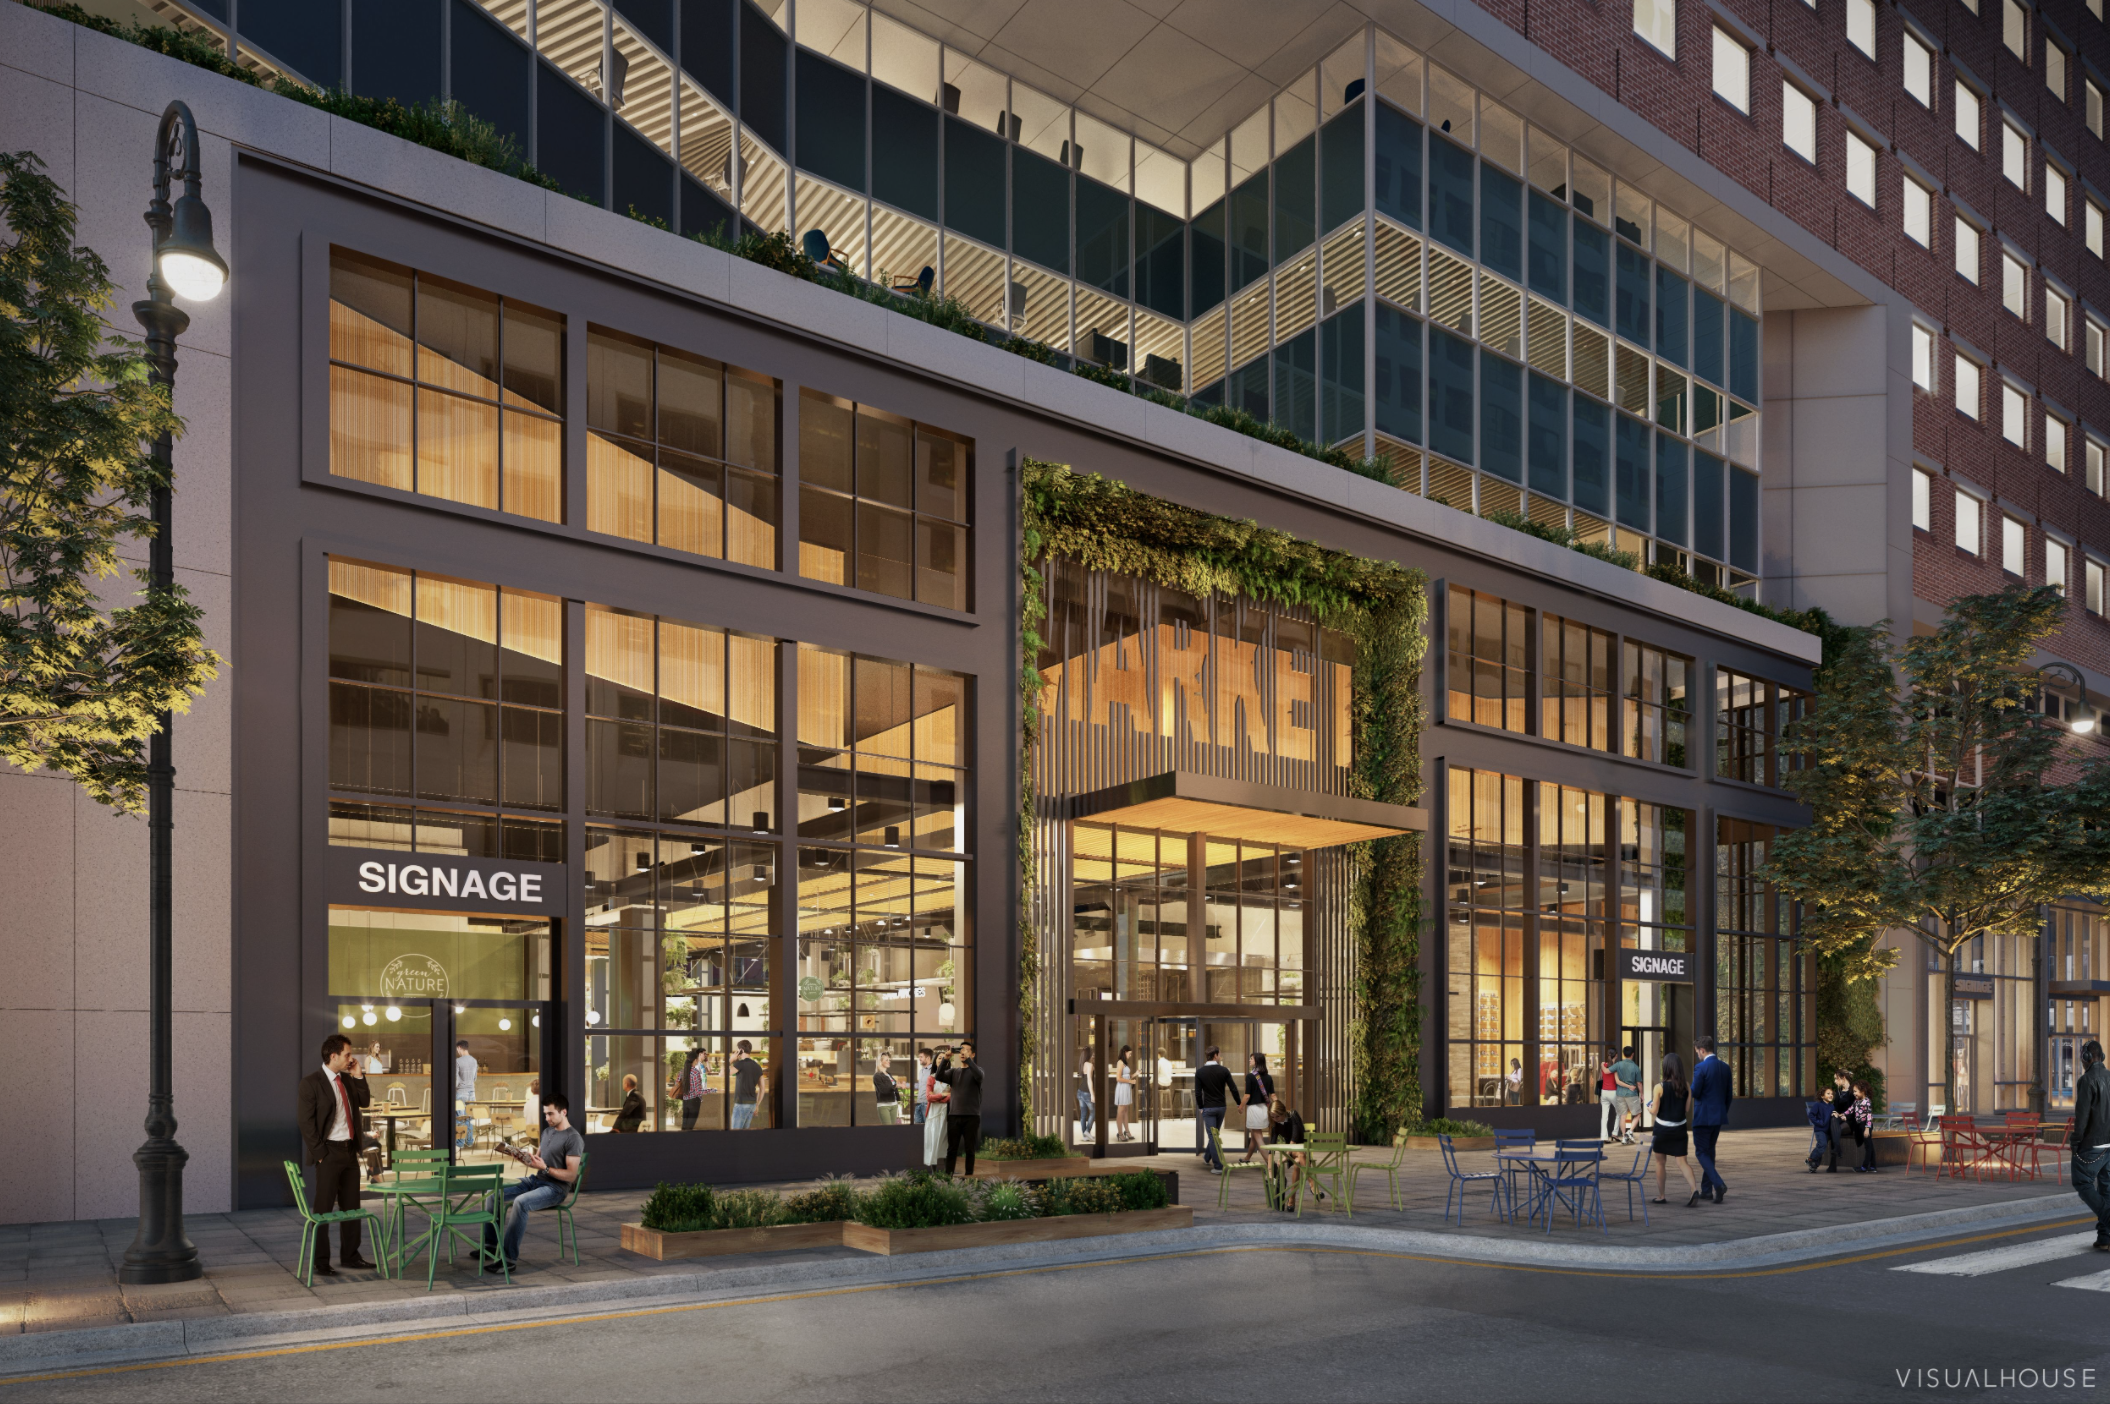 The exterior of a new food hall in the financial district shown in a rendering